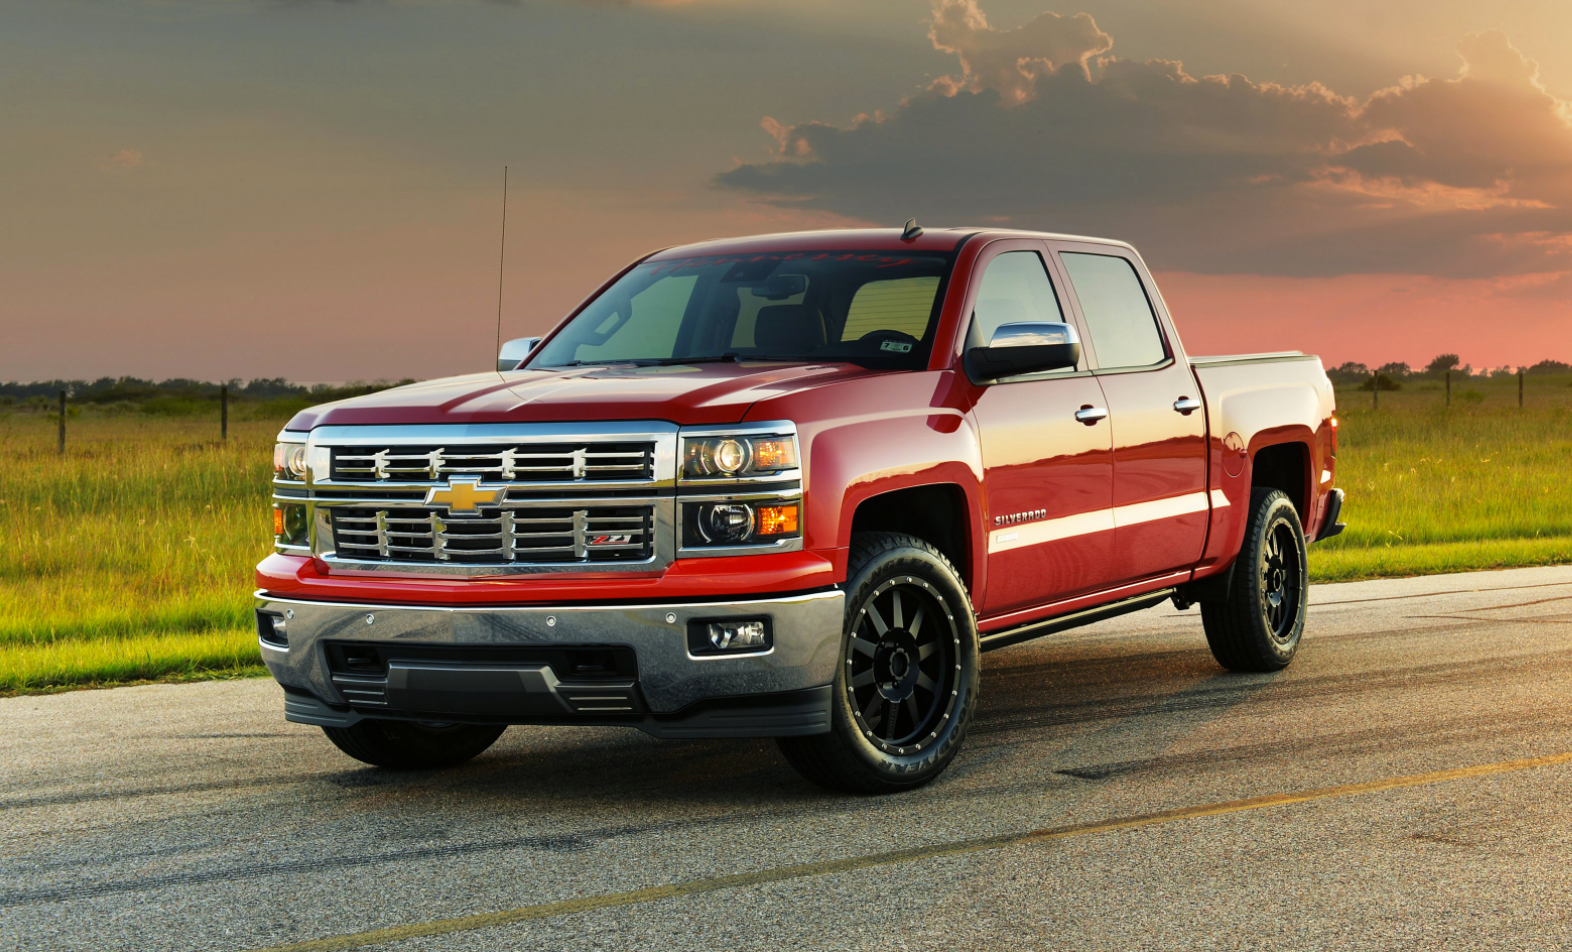 Best Performance Exhaust System for Chevy Silverado 1500